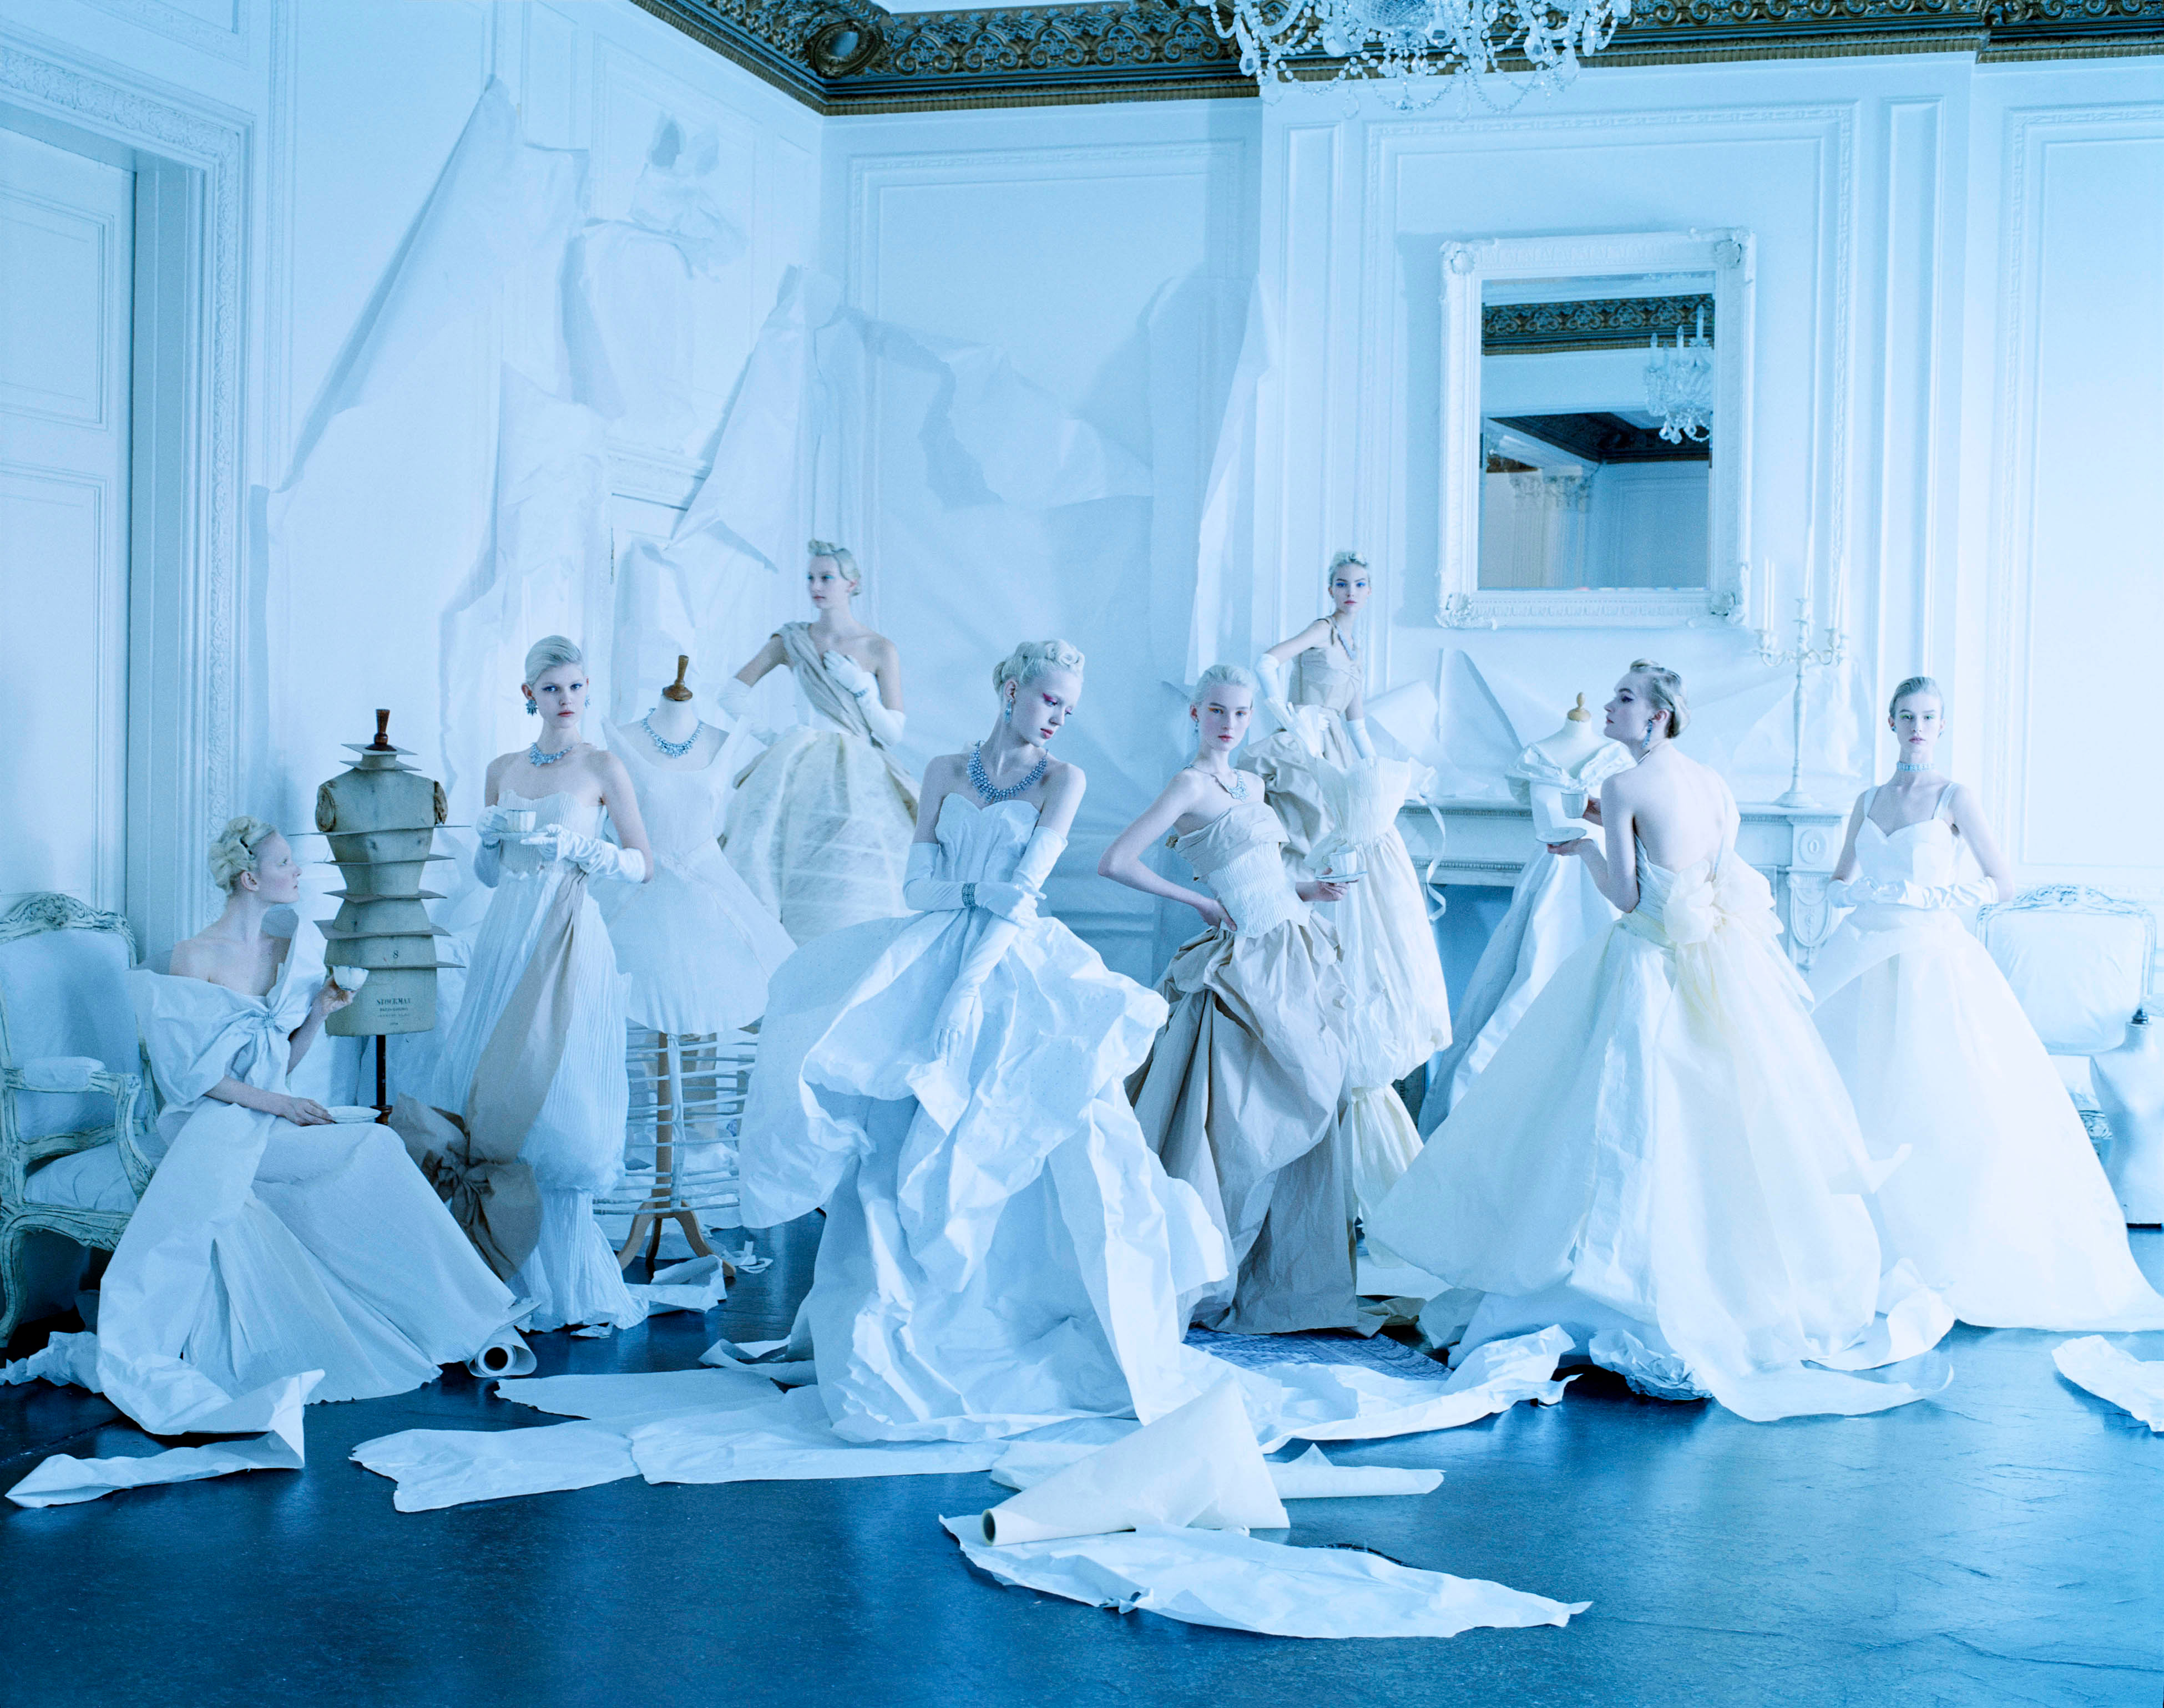 Tim Walker, Eight Models in Paper Dresses After Cecil Beaton, London, 2014. © Tim Walker